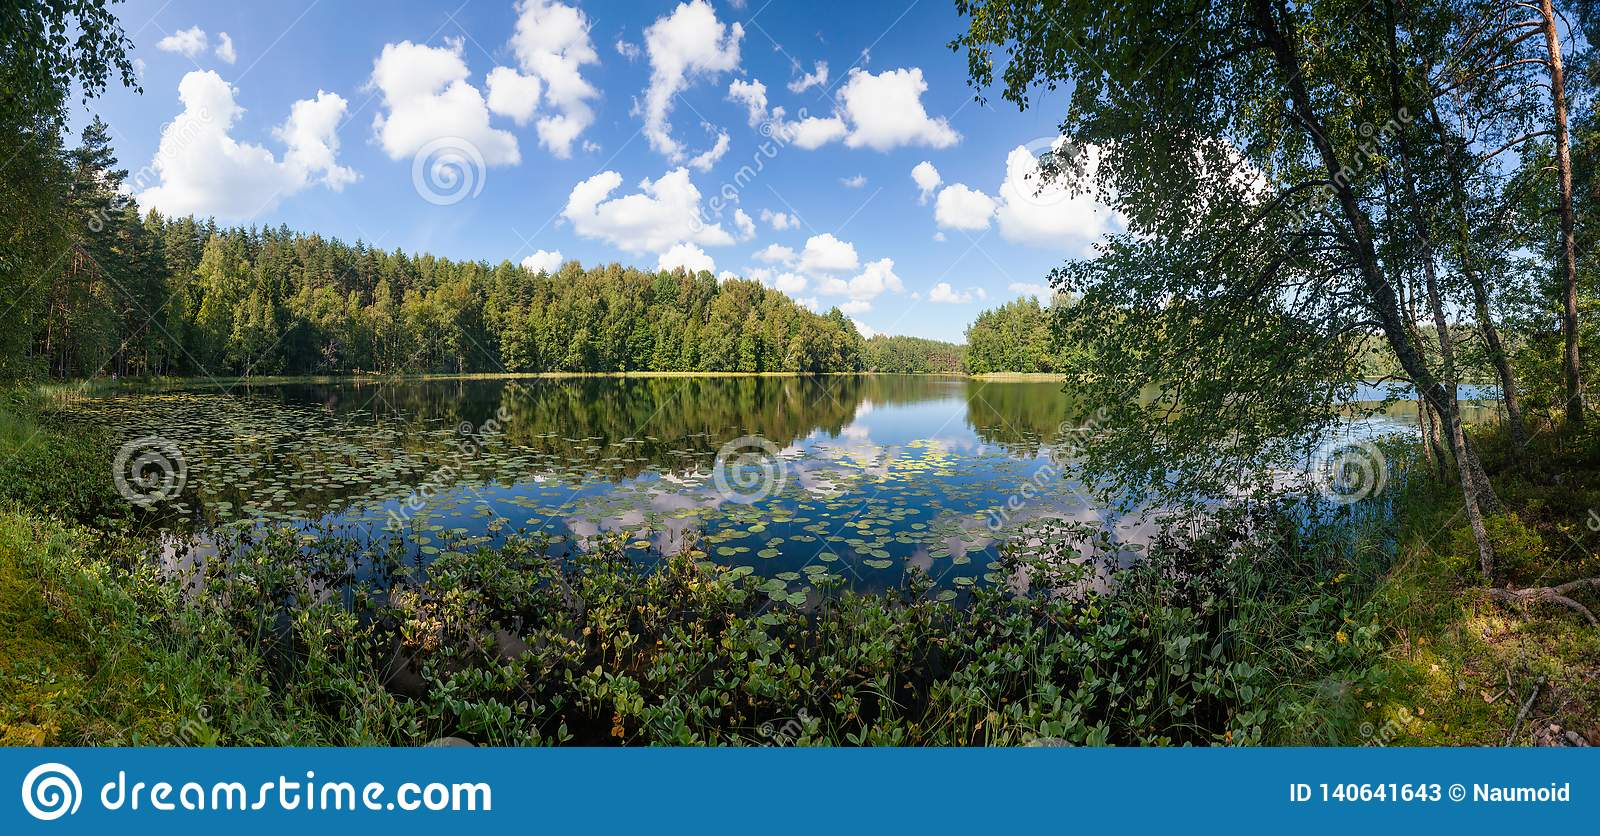 Summer day on remote calm lake in a boreal forest panorama